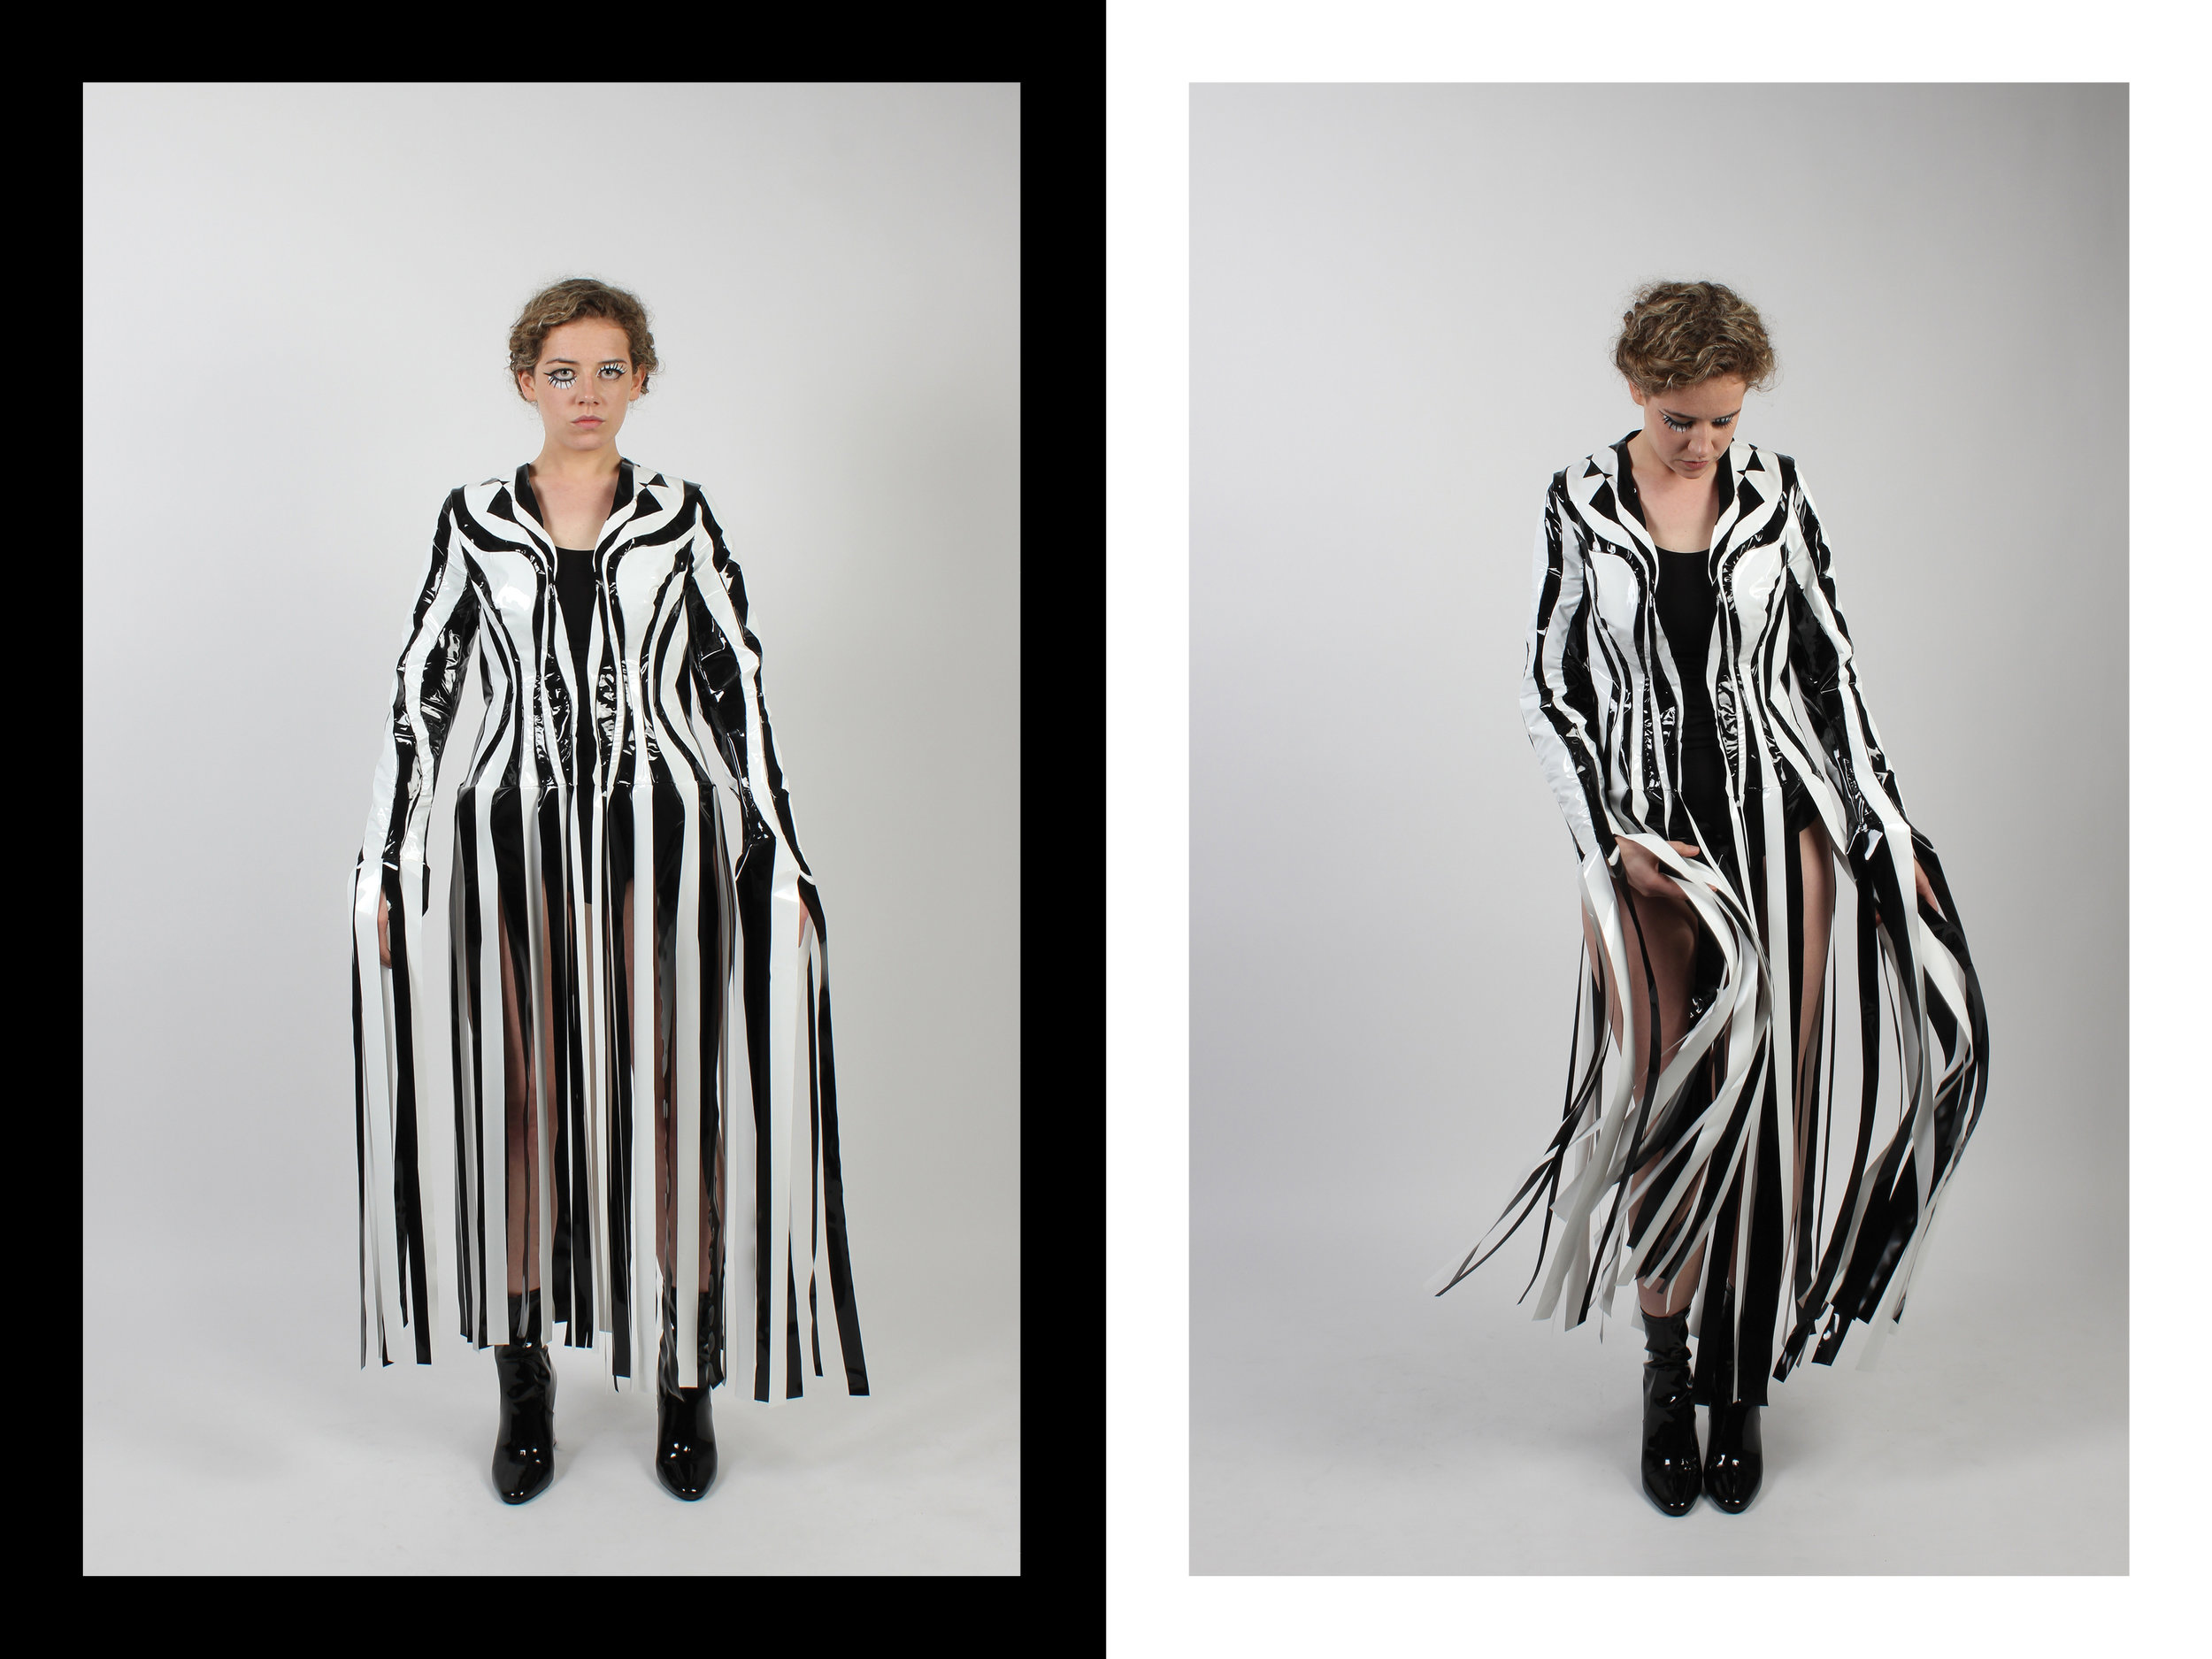 Coat made from plastic. Inspired by dazzle ship camouflage and disruptive colourisation. Designed to give wearer curved shape at bodice.